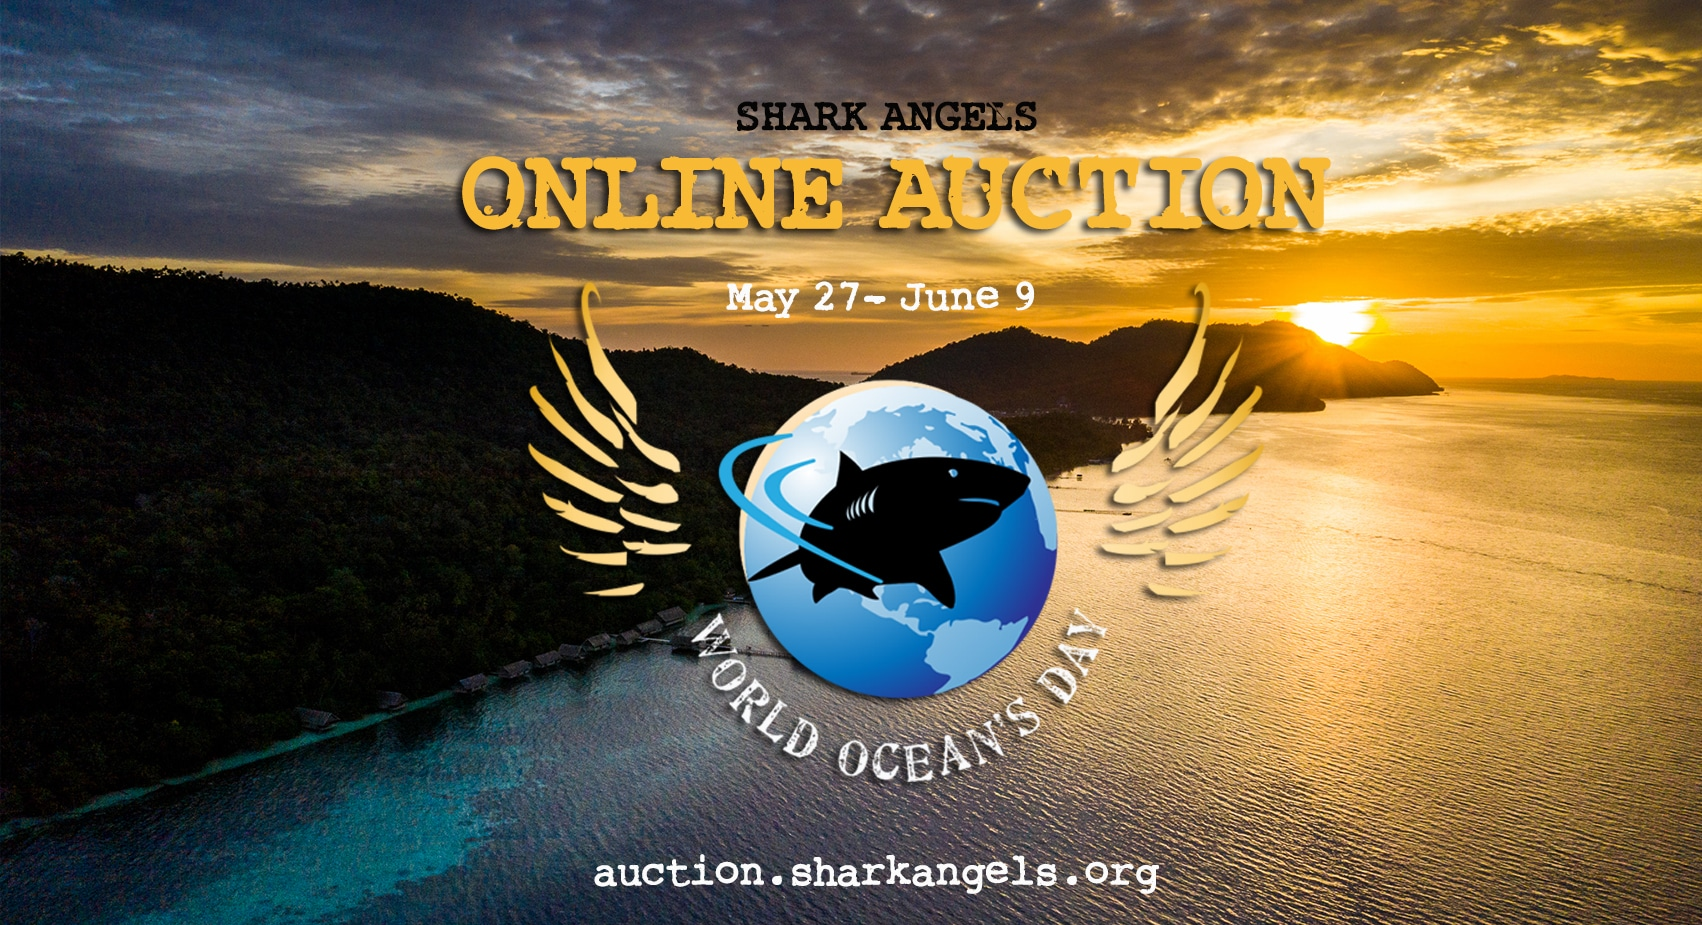 Shark Angels Launches Third World Oceans Day Auction